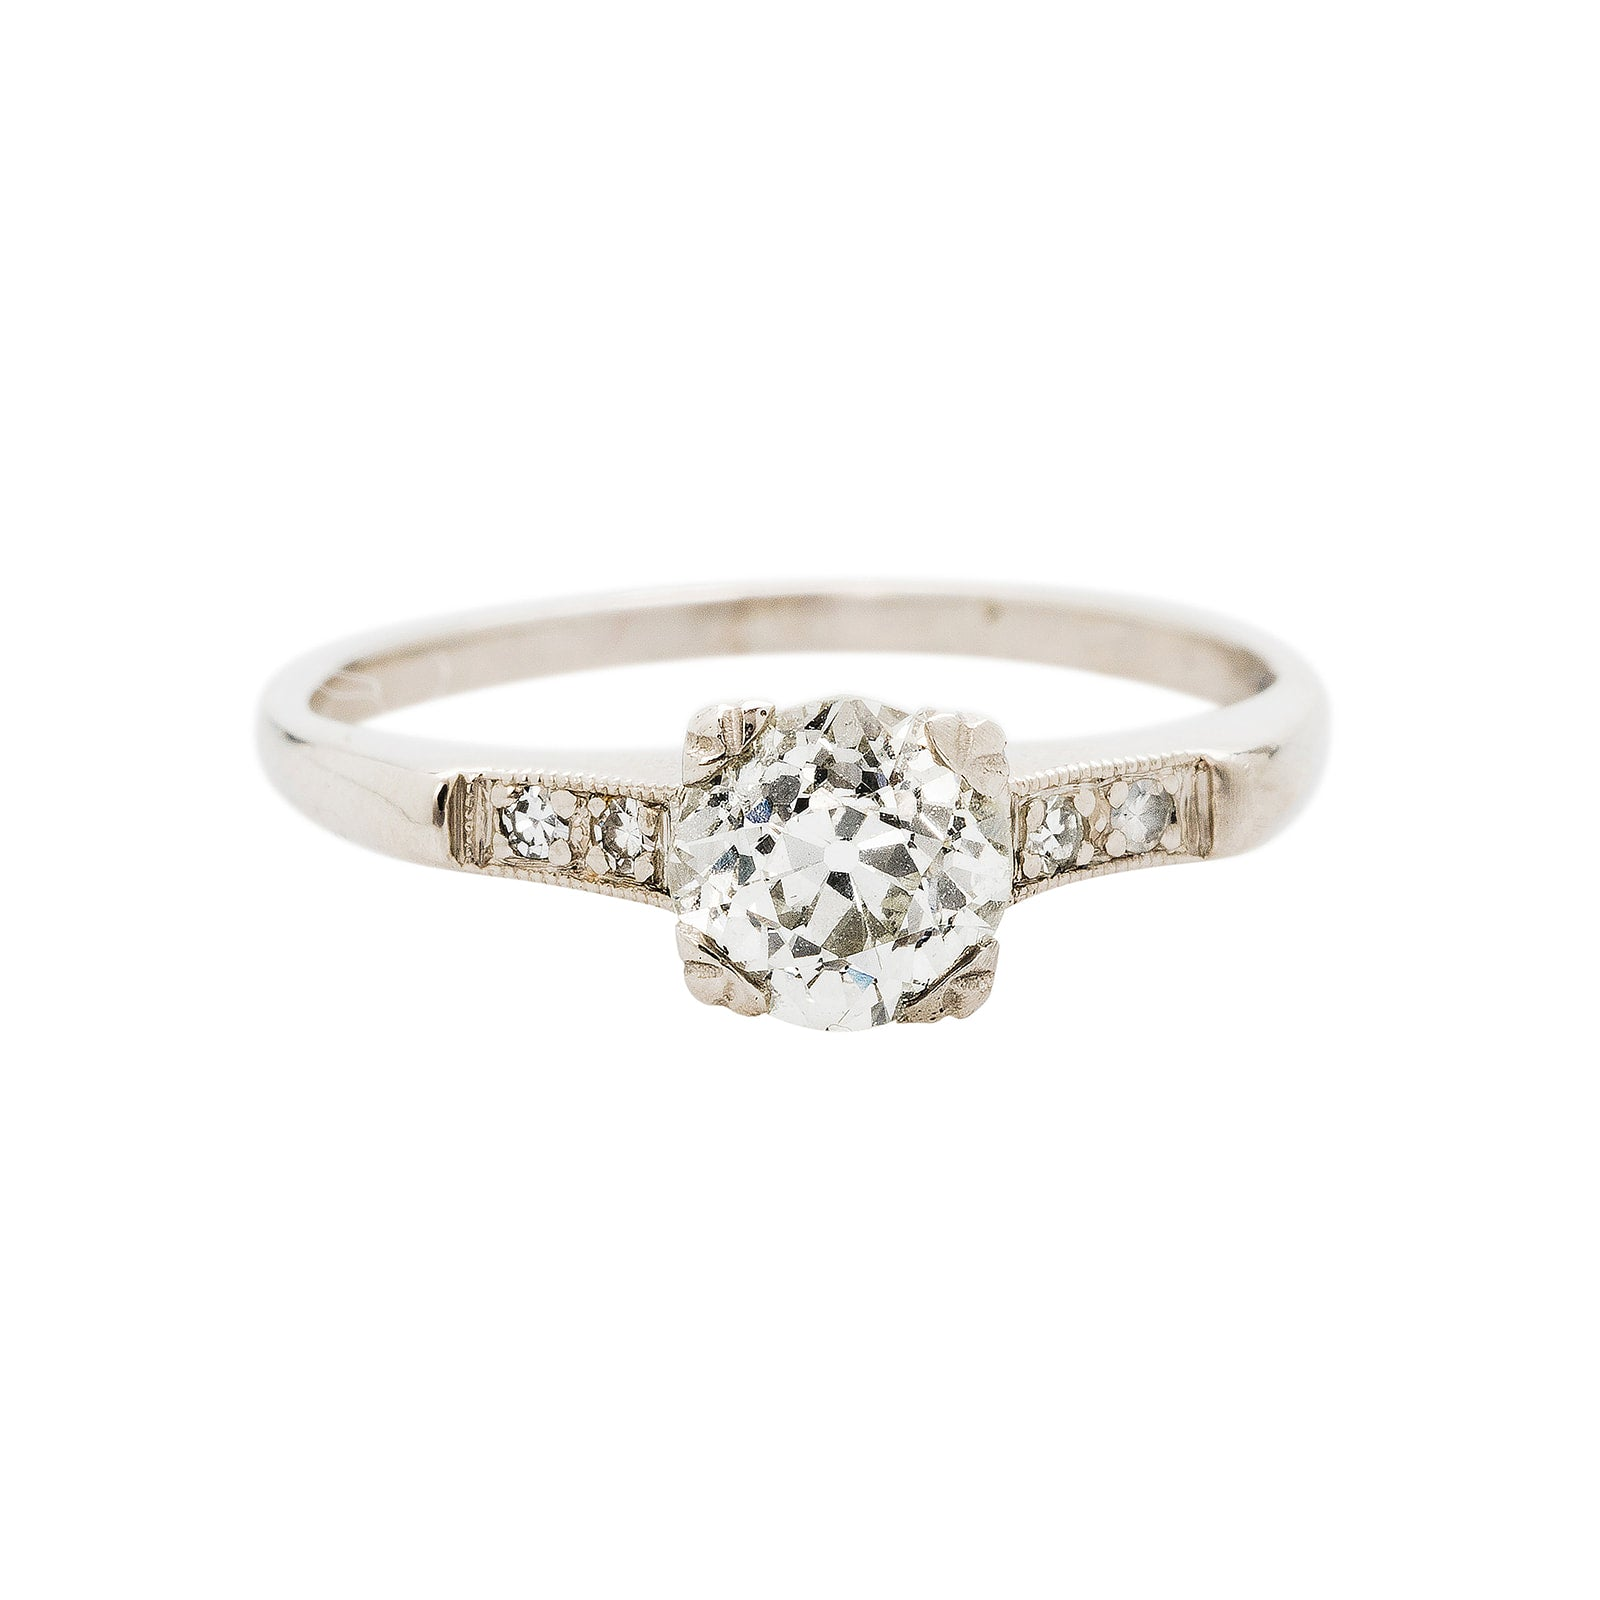 A Timeless and Authentic Art Deco Diamond Engagement Ring